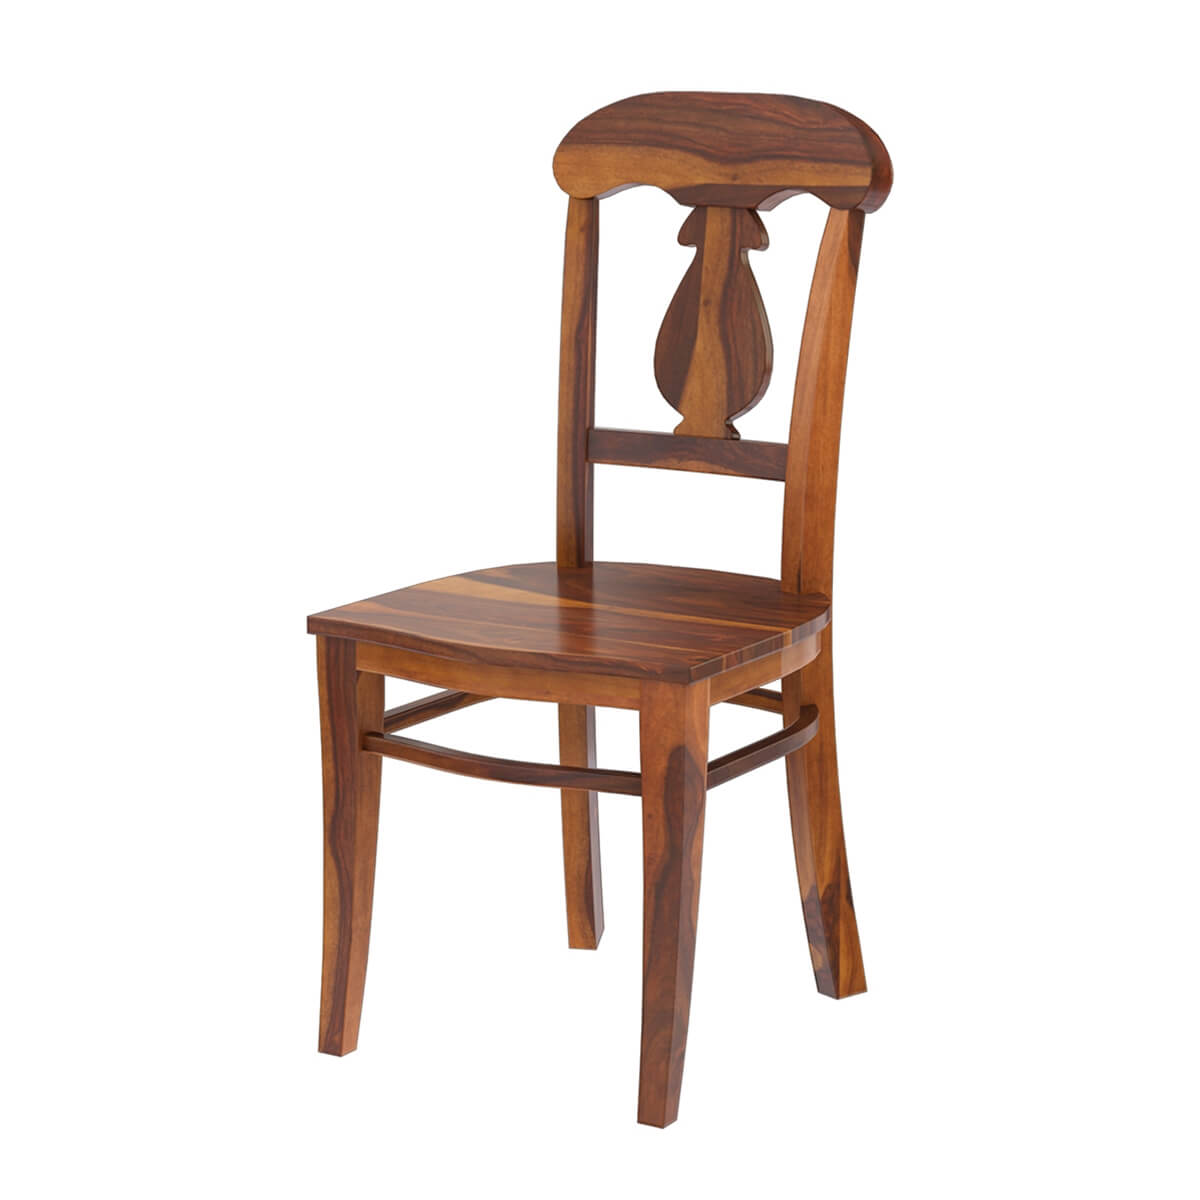 Tiraspol Traditional Rustic Solid Wood Dining Chair